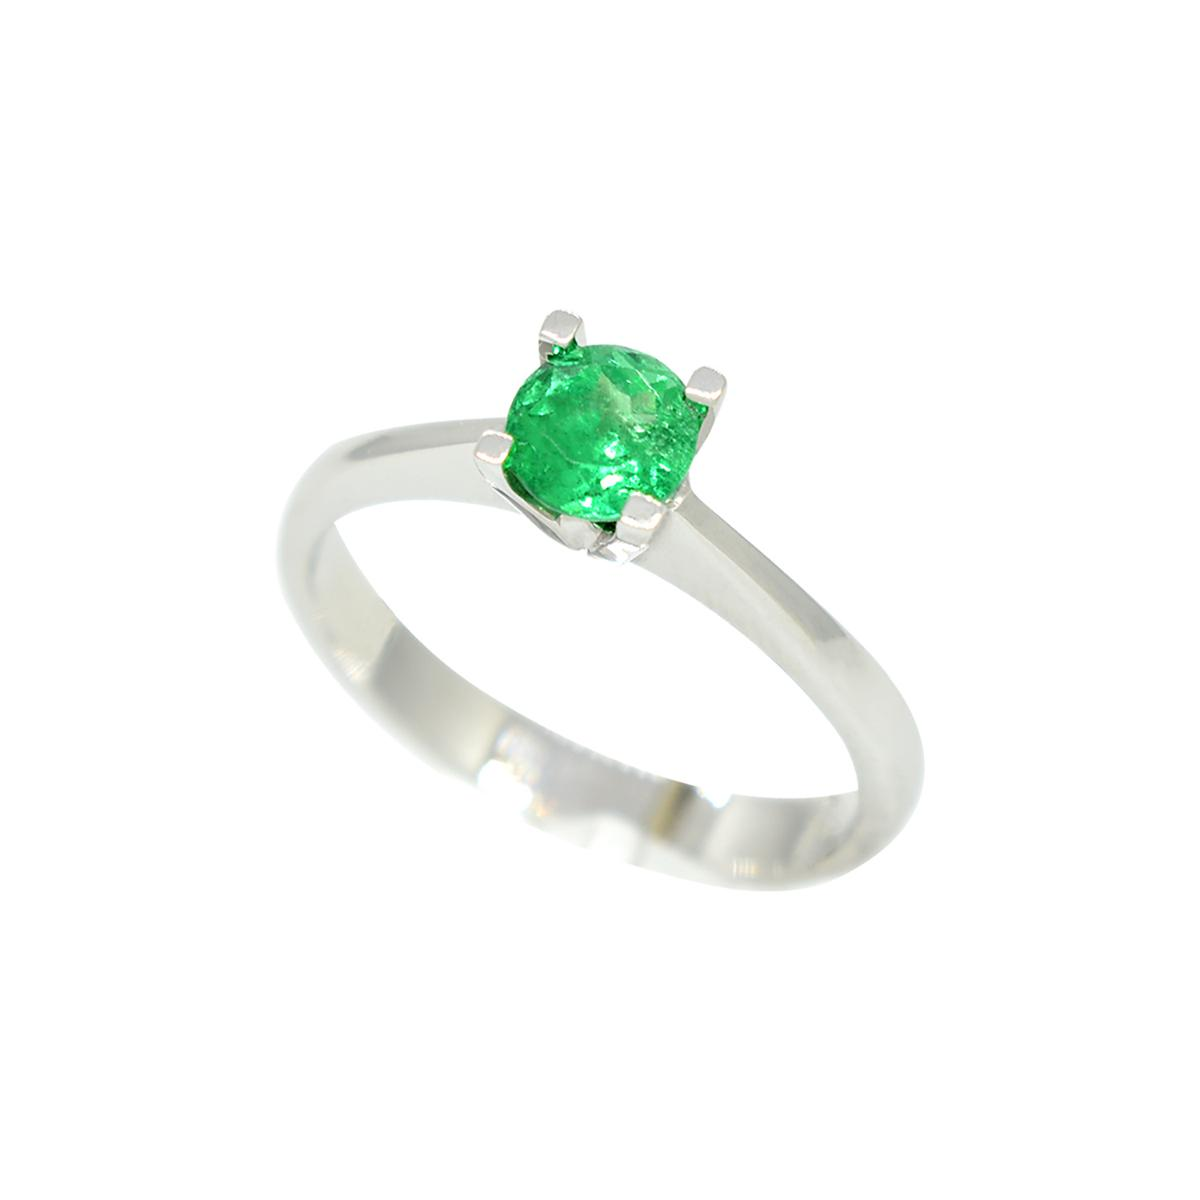 solitaire-emerald-ring-in-18k-white-gold-with-round-cut-natural-emerald